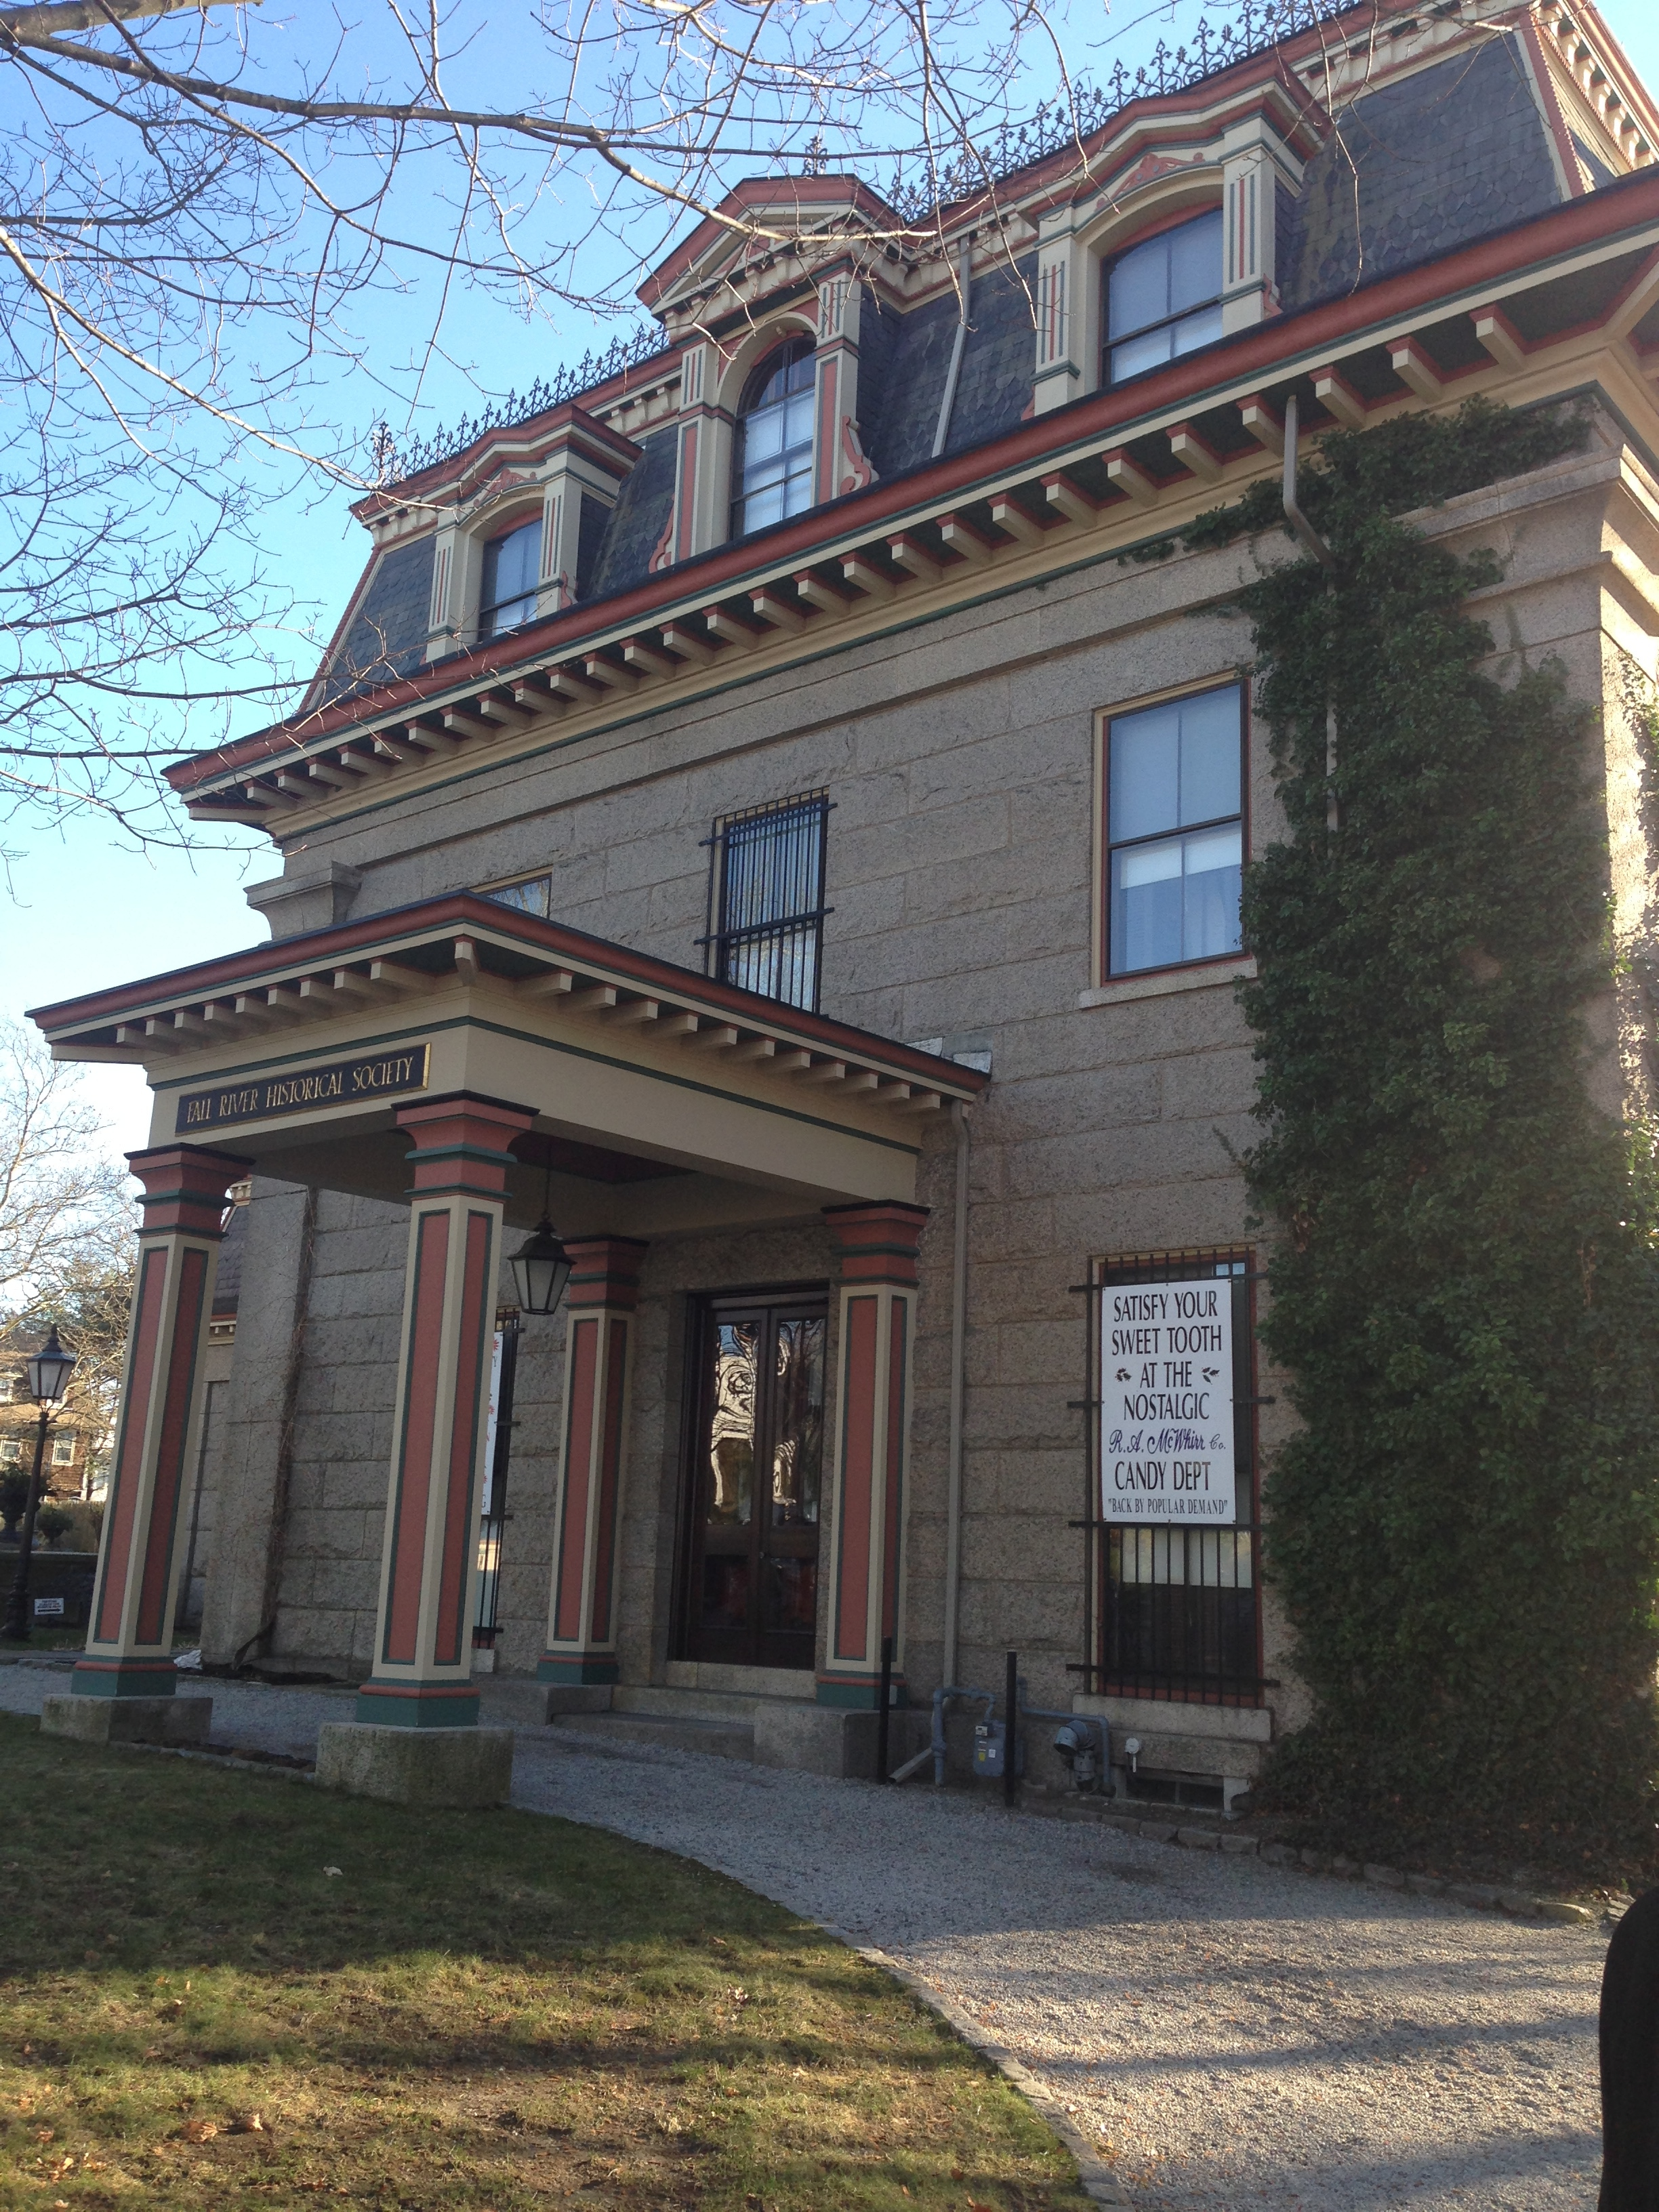 The Fall River Historical Society